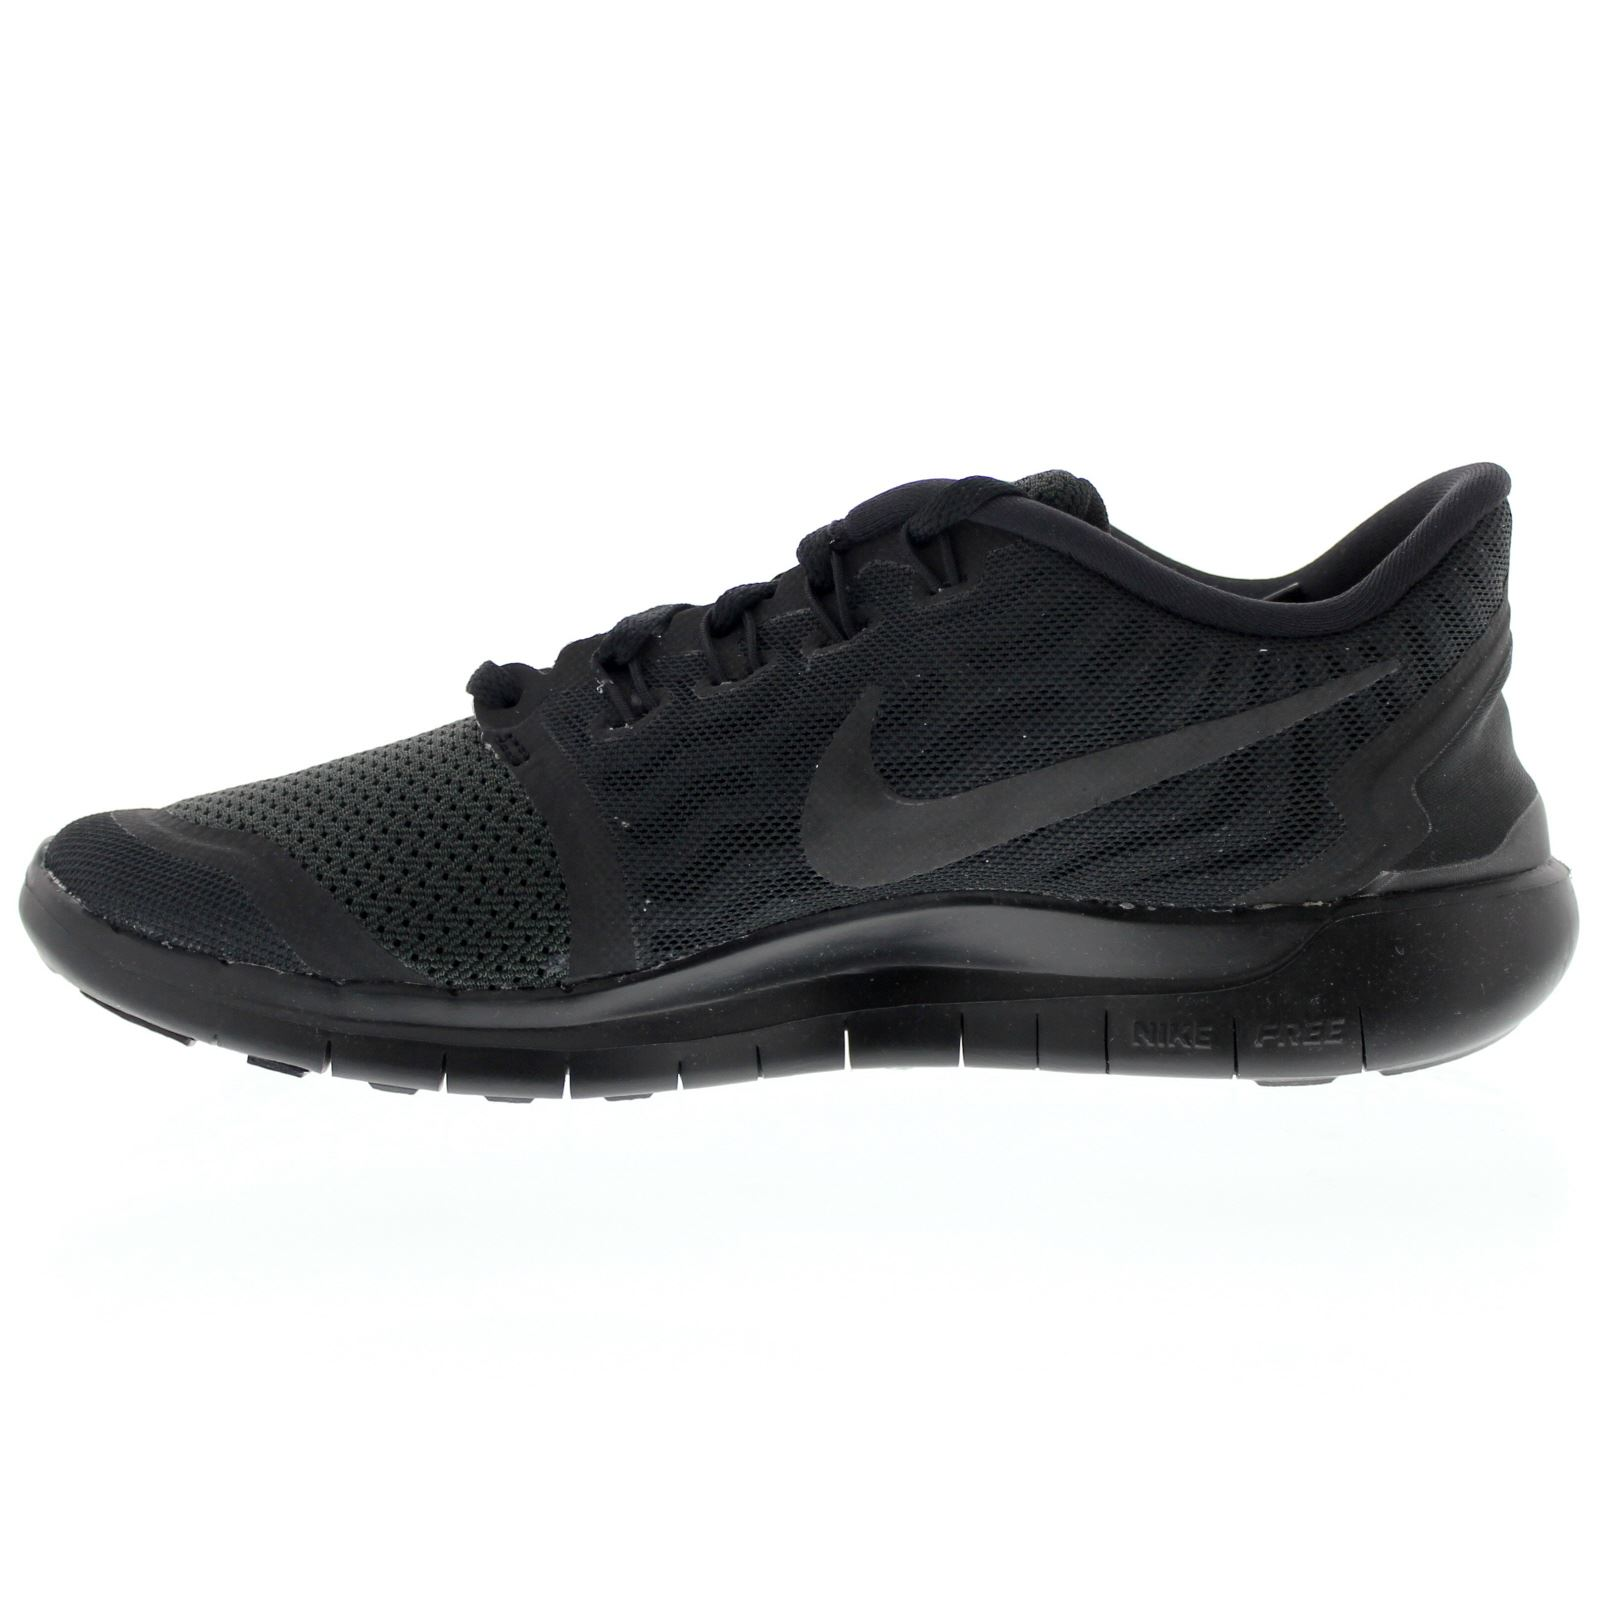 timeless design 04423 f6559 ... coupon code for ebay.in nike free 5.0 black black womens trainers  724383 001 dde16